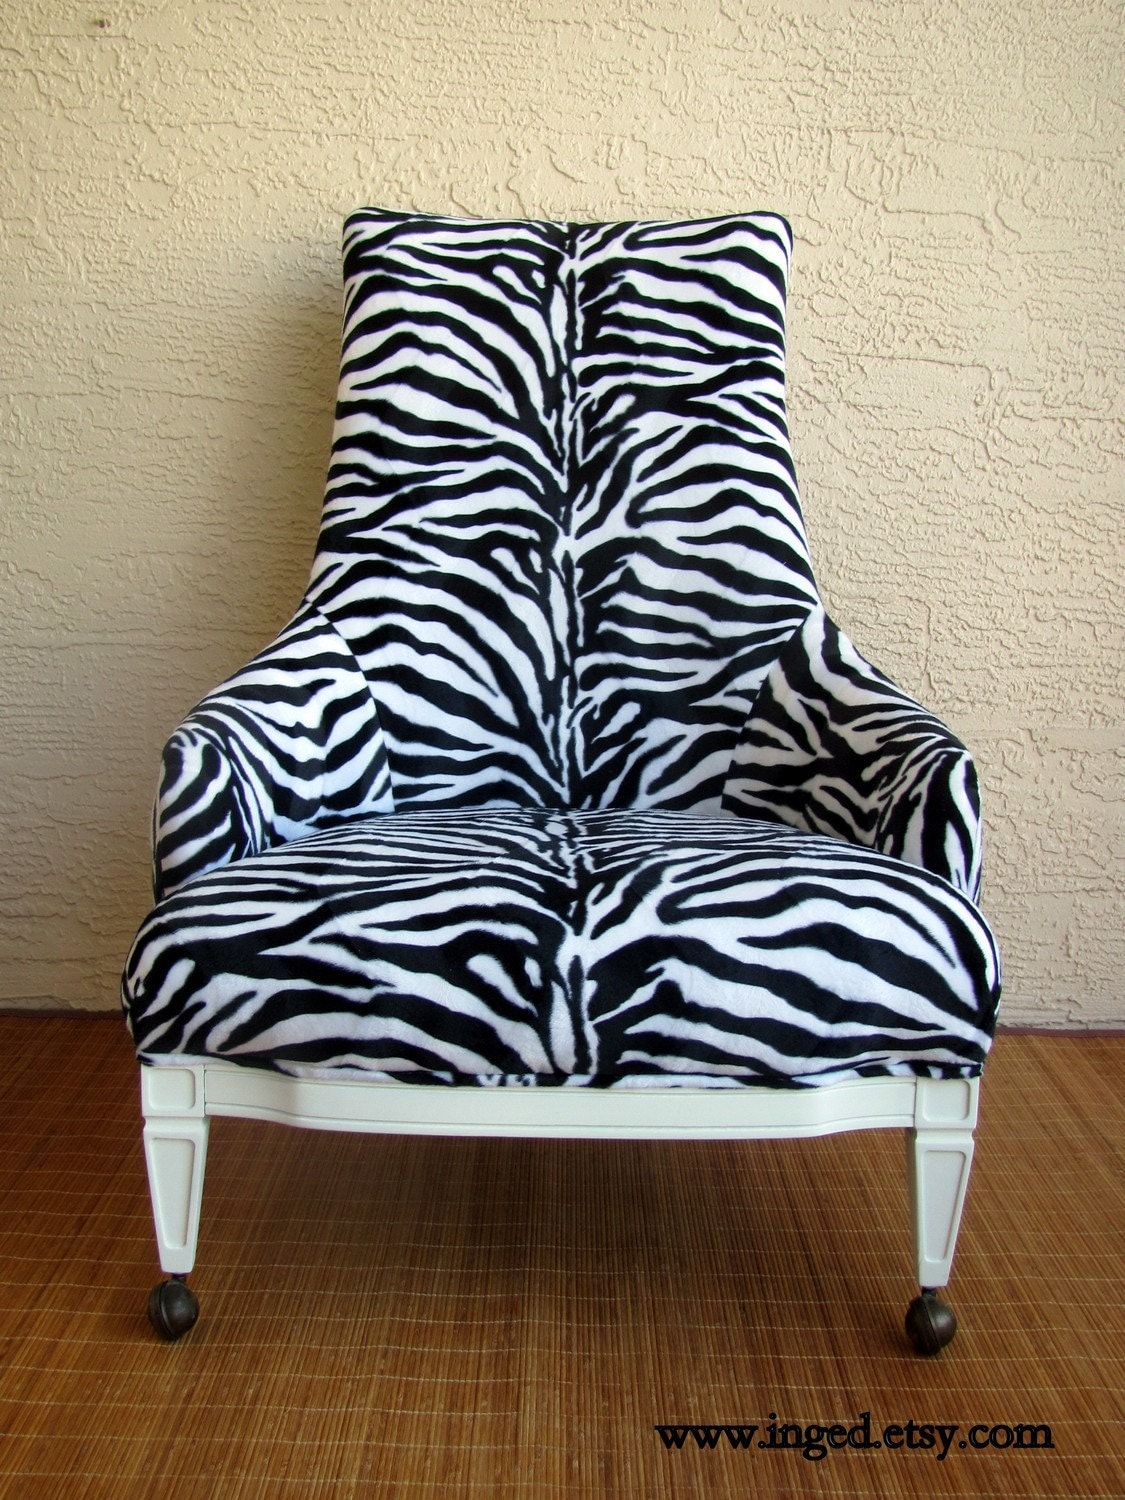 ON SALE Vintage Hollywood Regency ZEBRA Print CHAIR by Inged